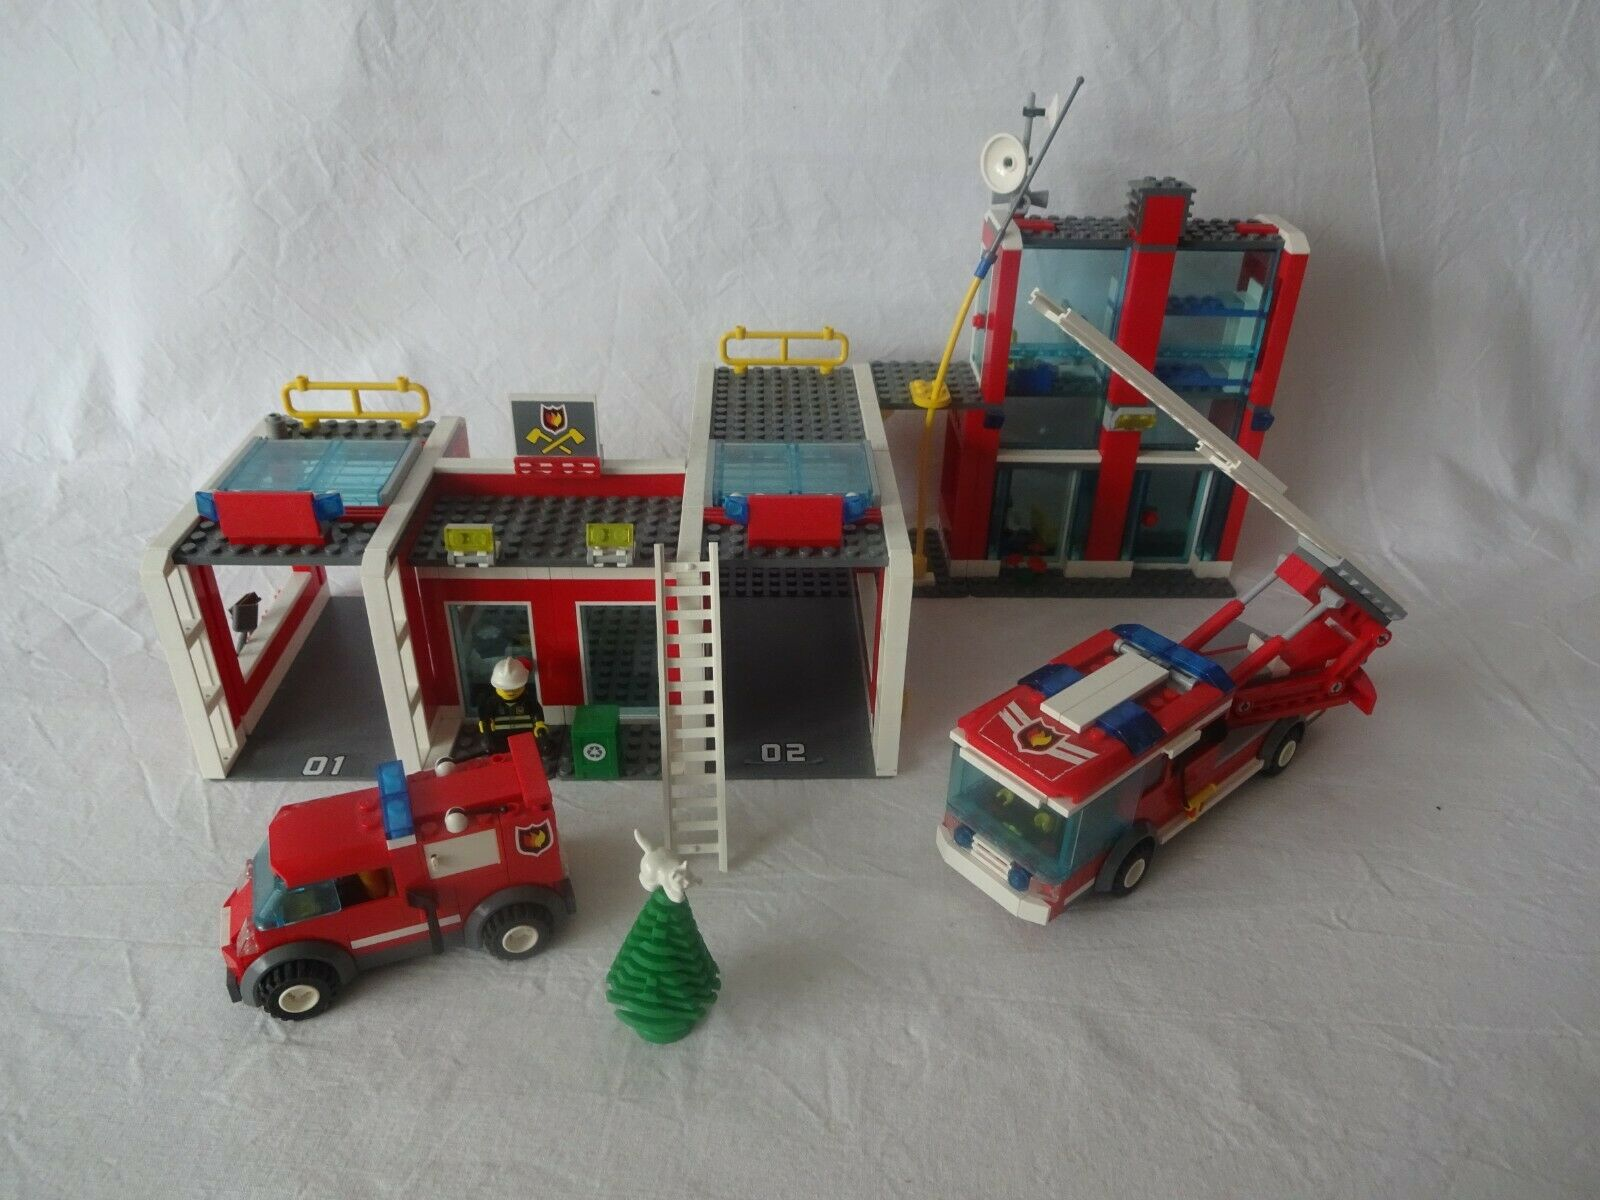 LEGO ® City 7208 Fire Station